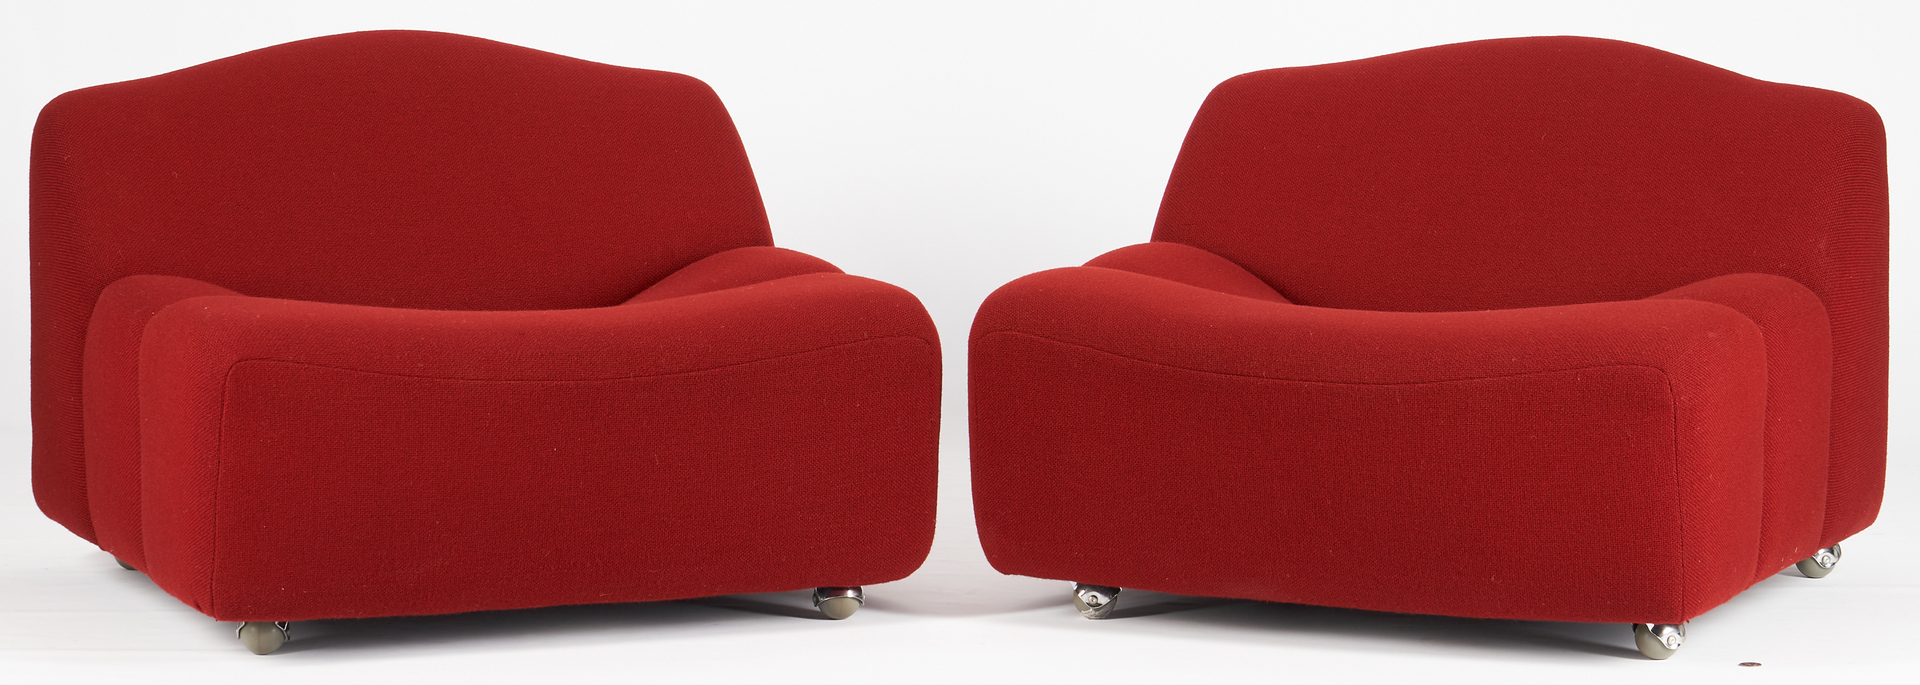 Lot 615: Pr. Pierre Paulin ABCD Chairs for Artifort